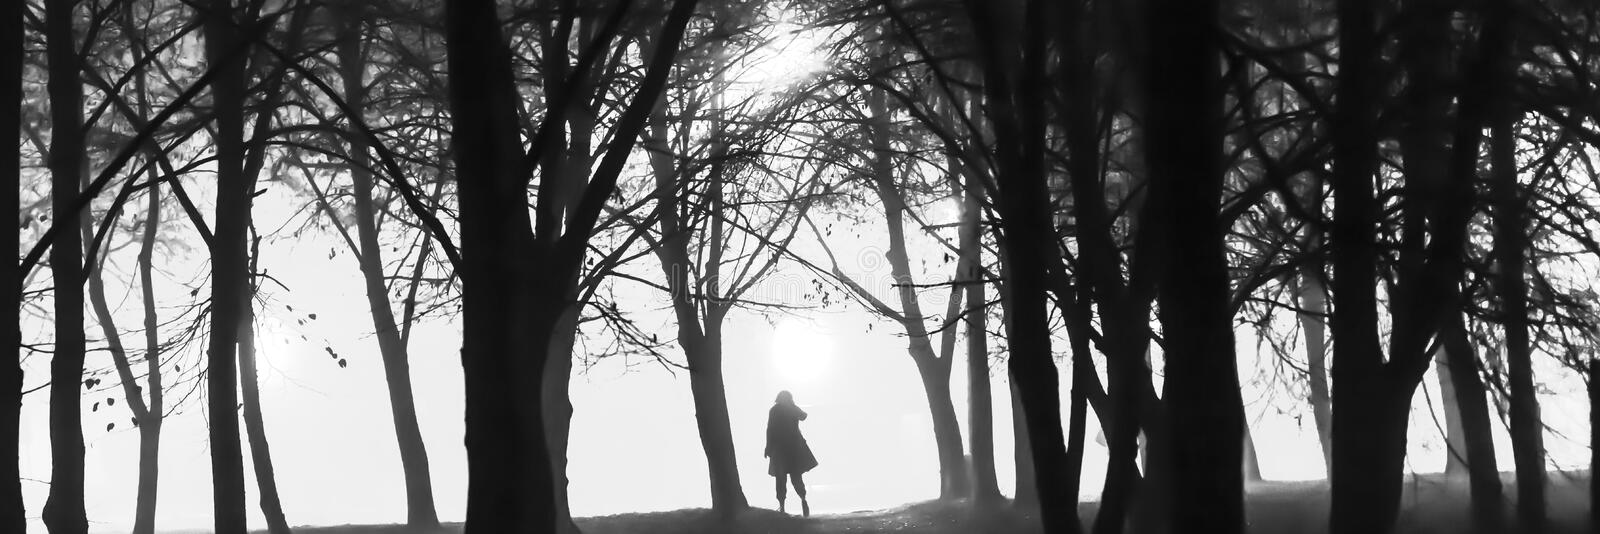 A black and white photo of a silhoutte of a person in between the trees at night stock photos